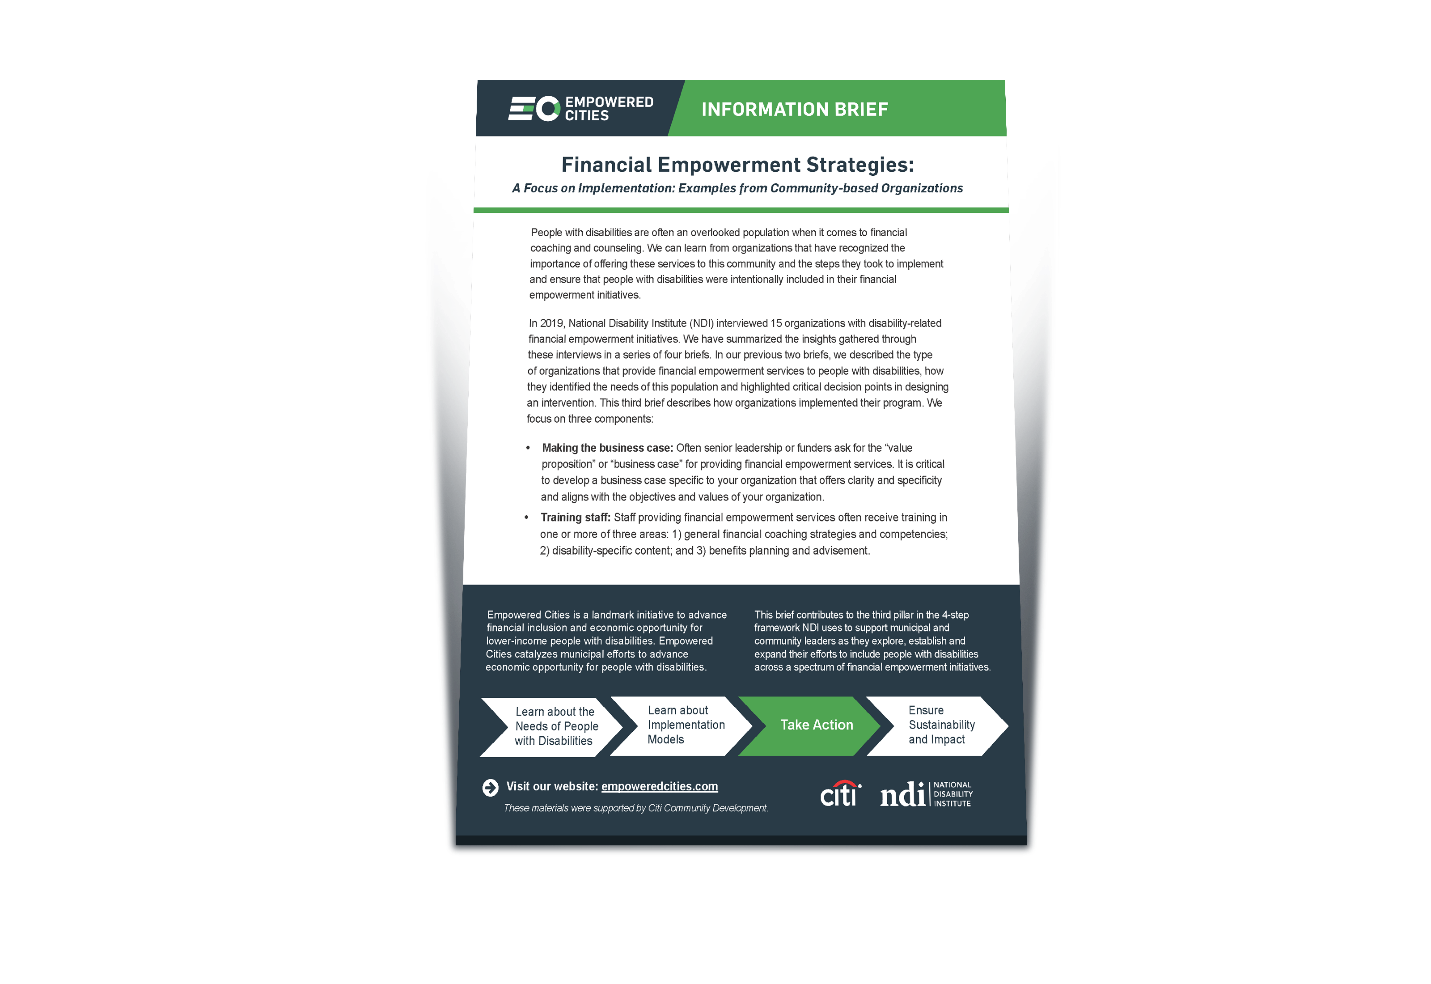 Financial Empowerment Strategies: A Focus on Implementation and Examples from Community-Based Organizations